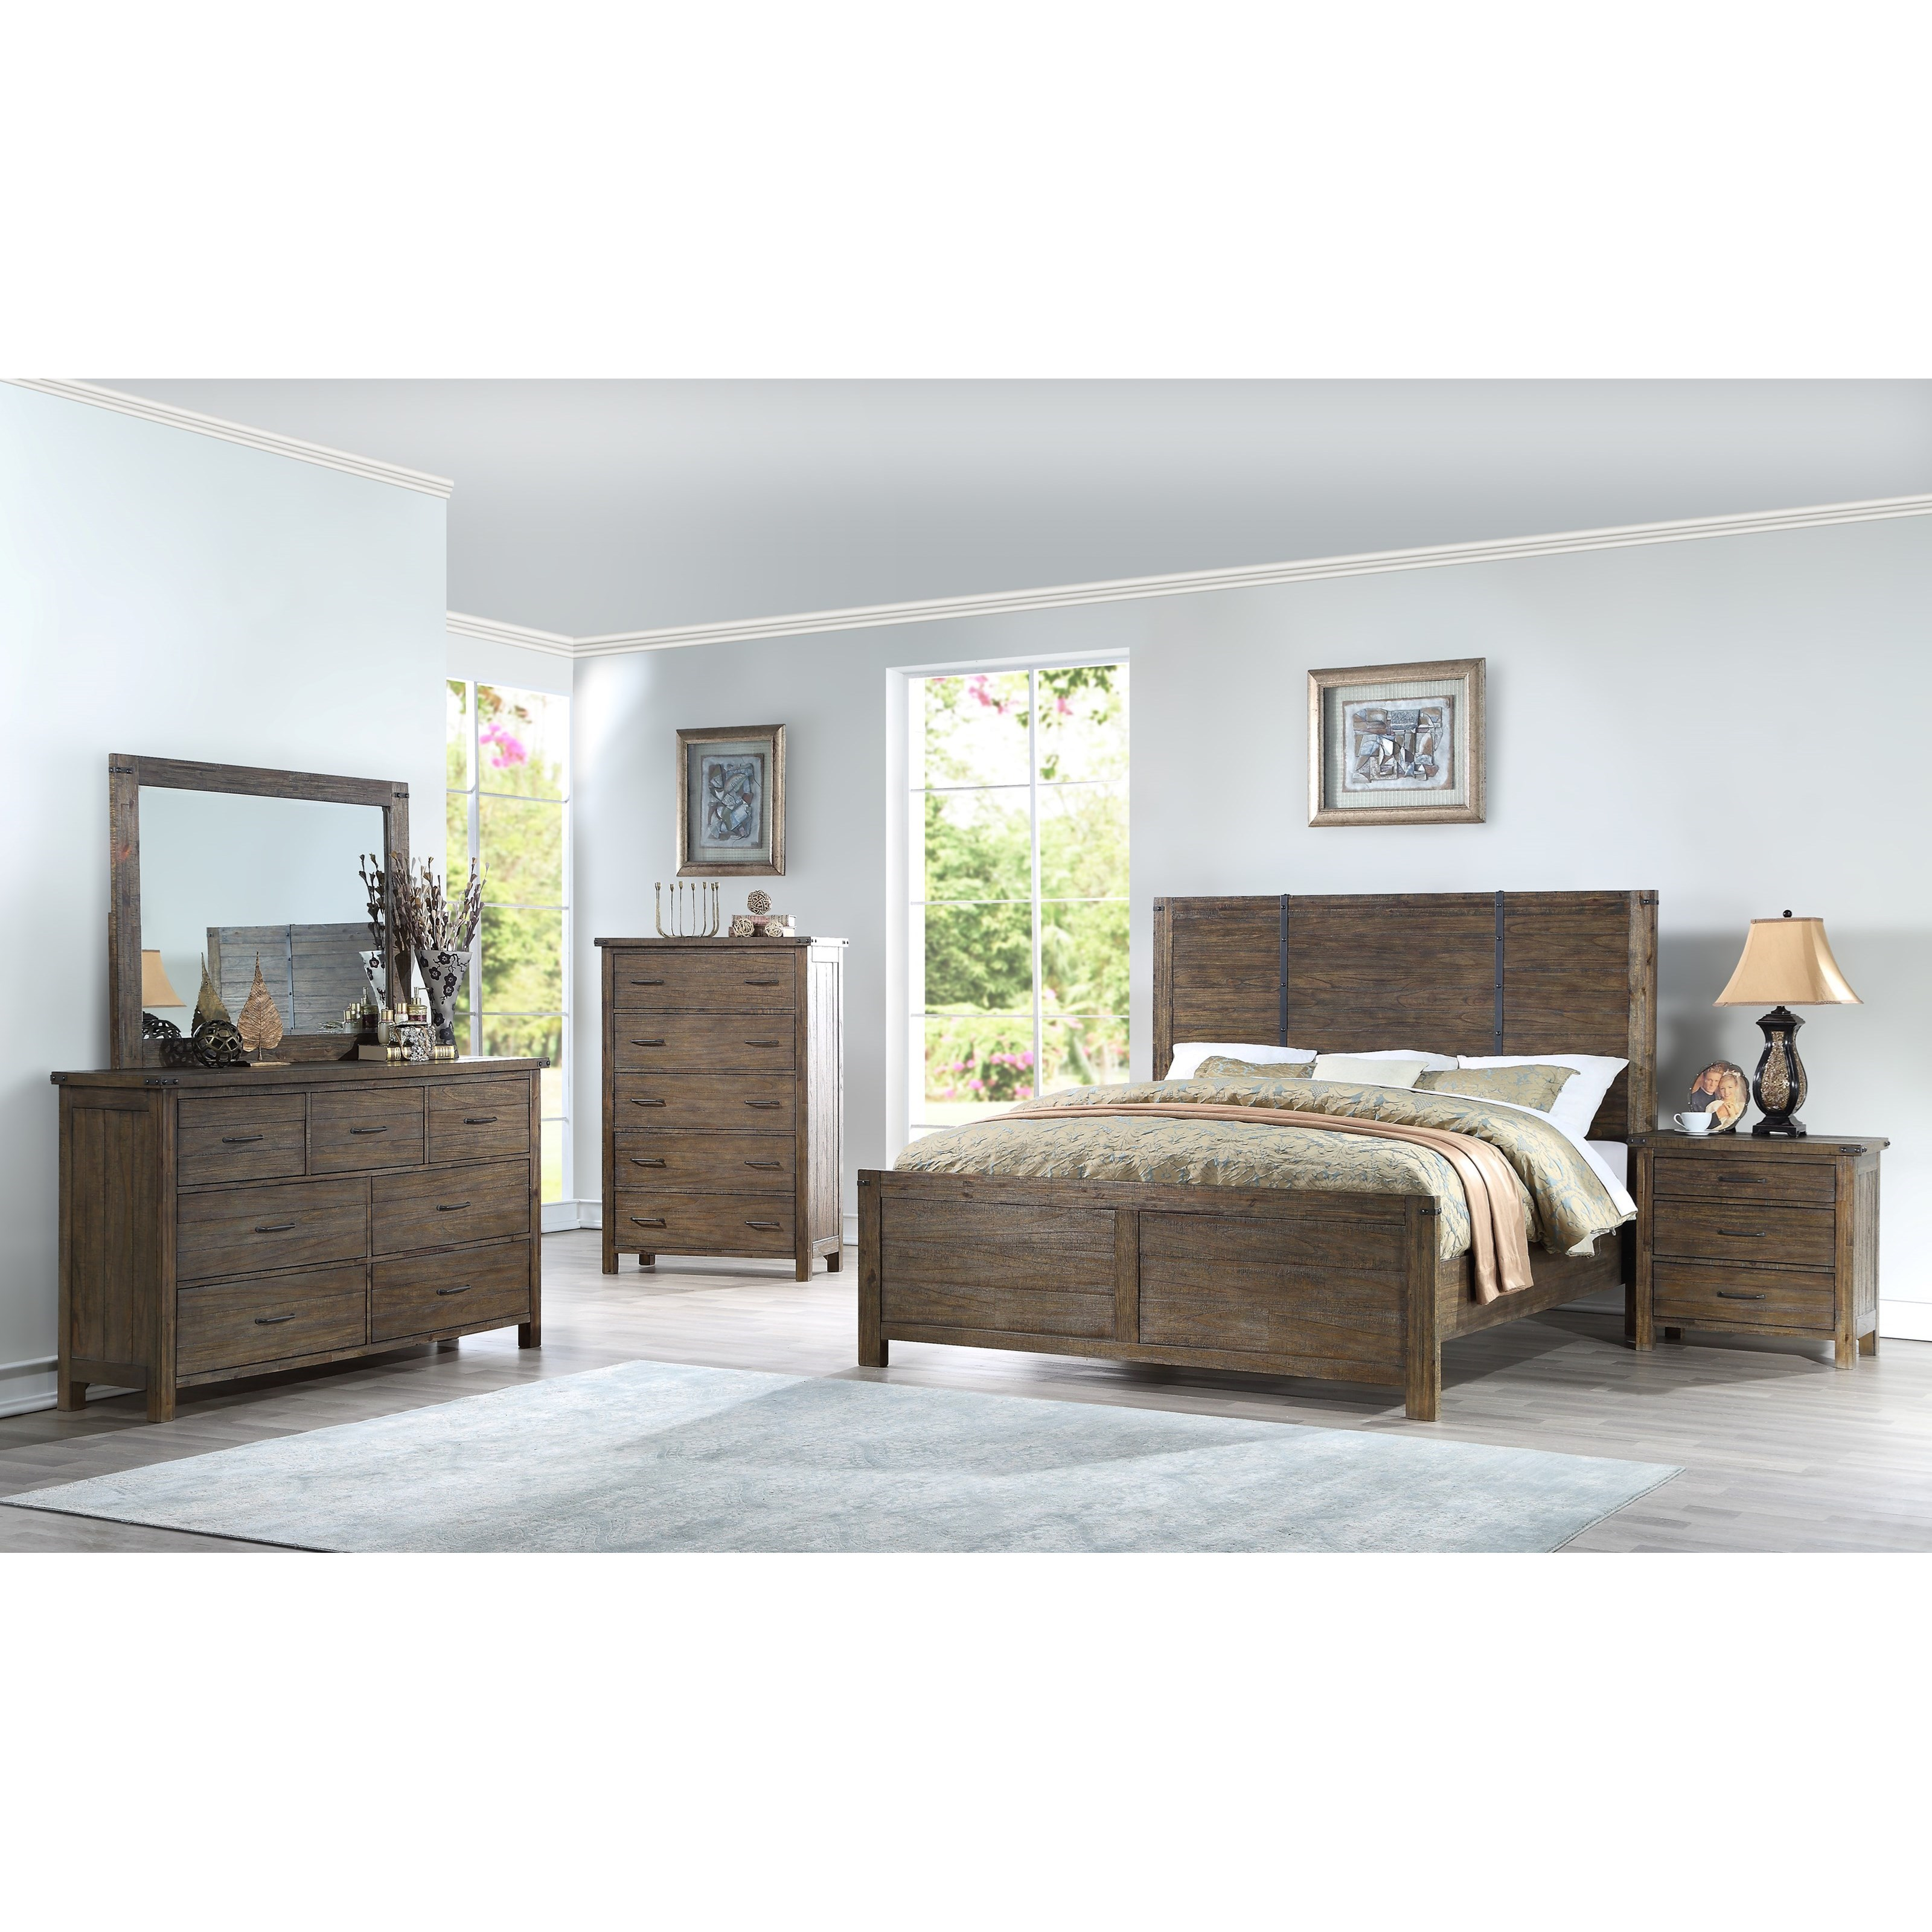 Leon 5 Piece King Bedroom Group by NC at Walker's Furniture